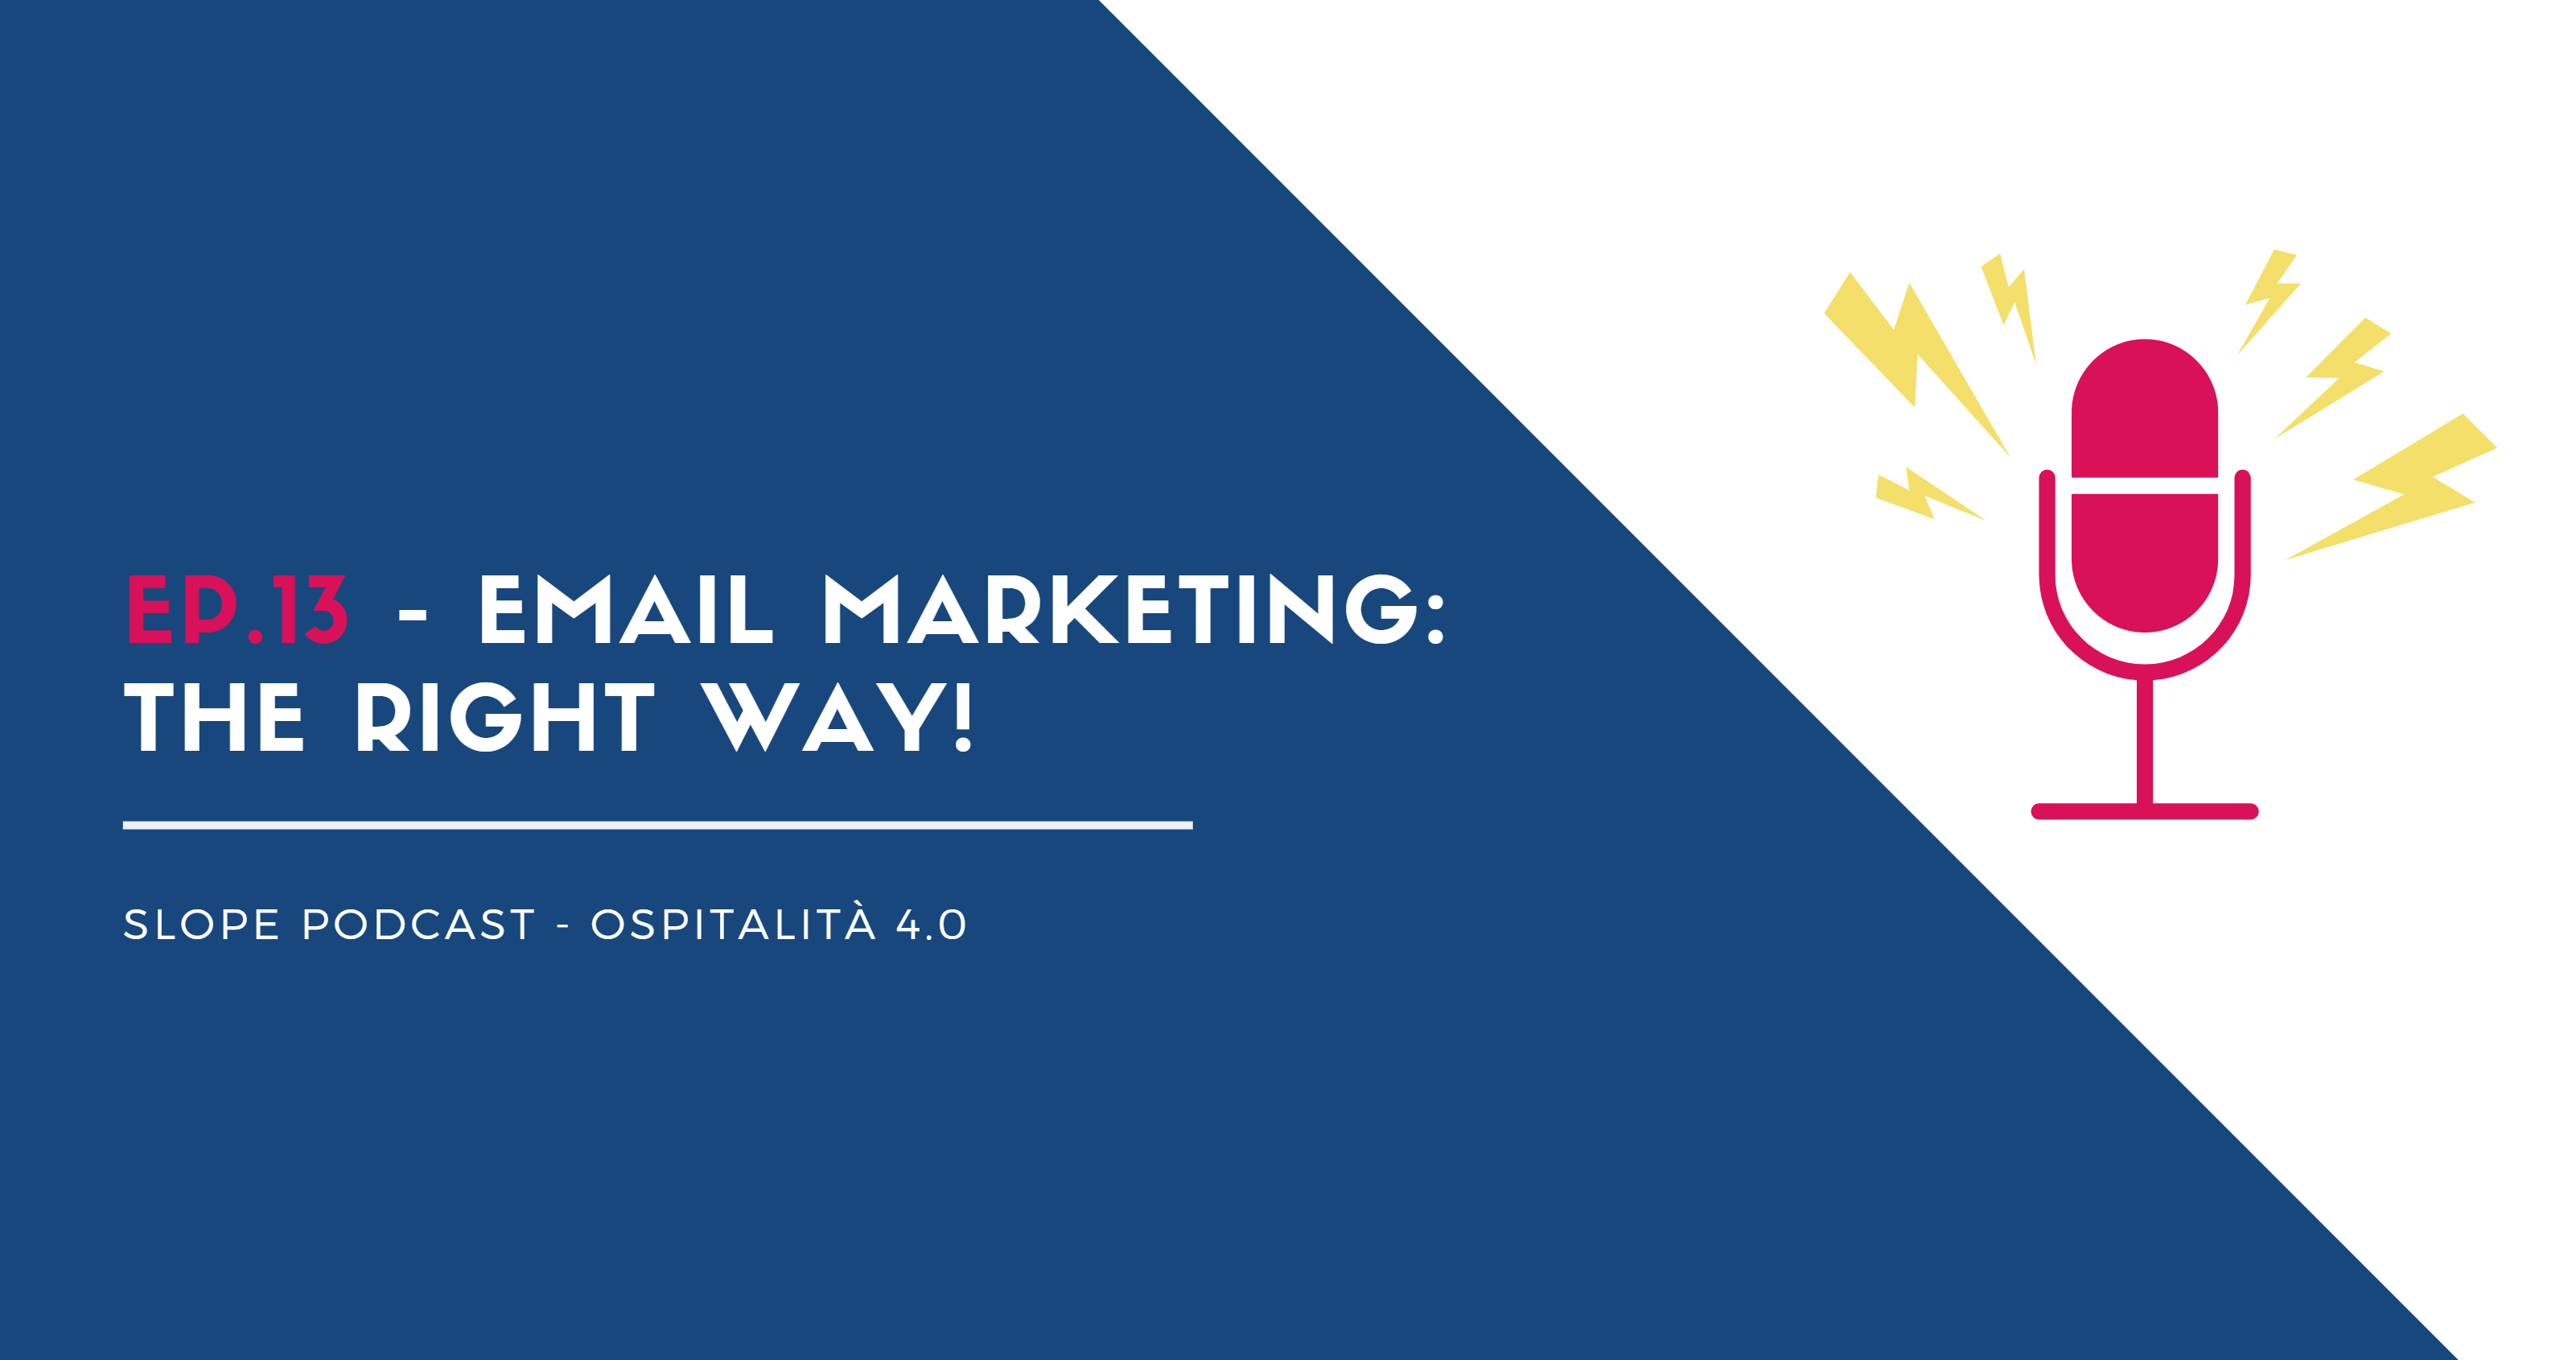 Email Marketing Hotel the right way